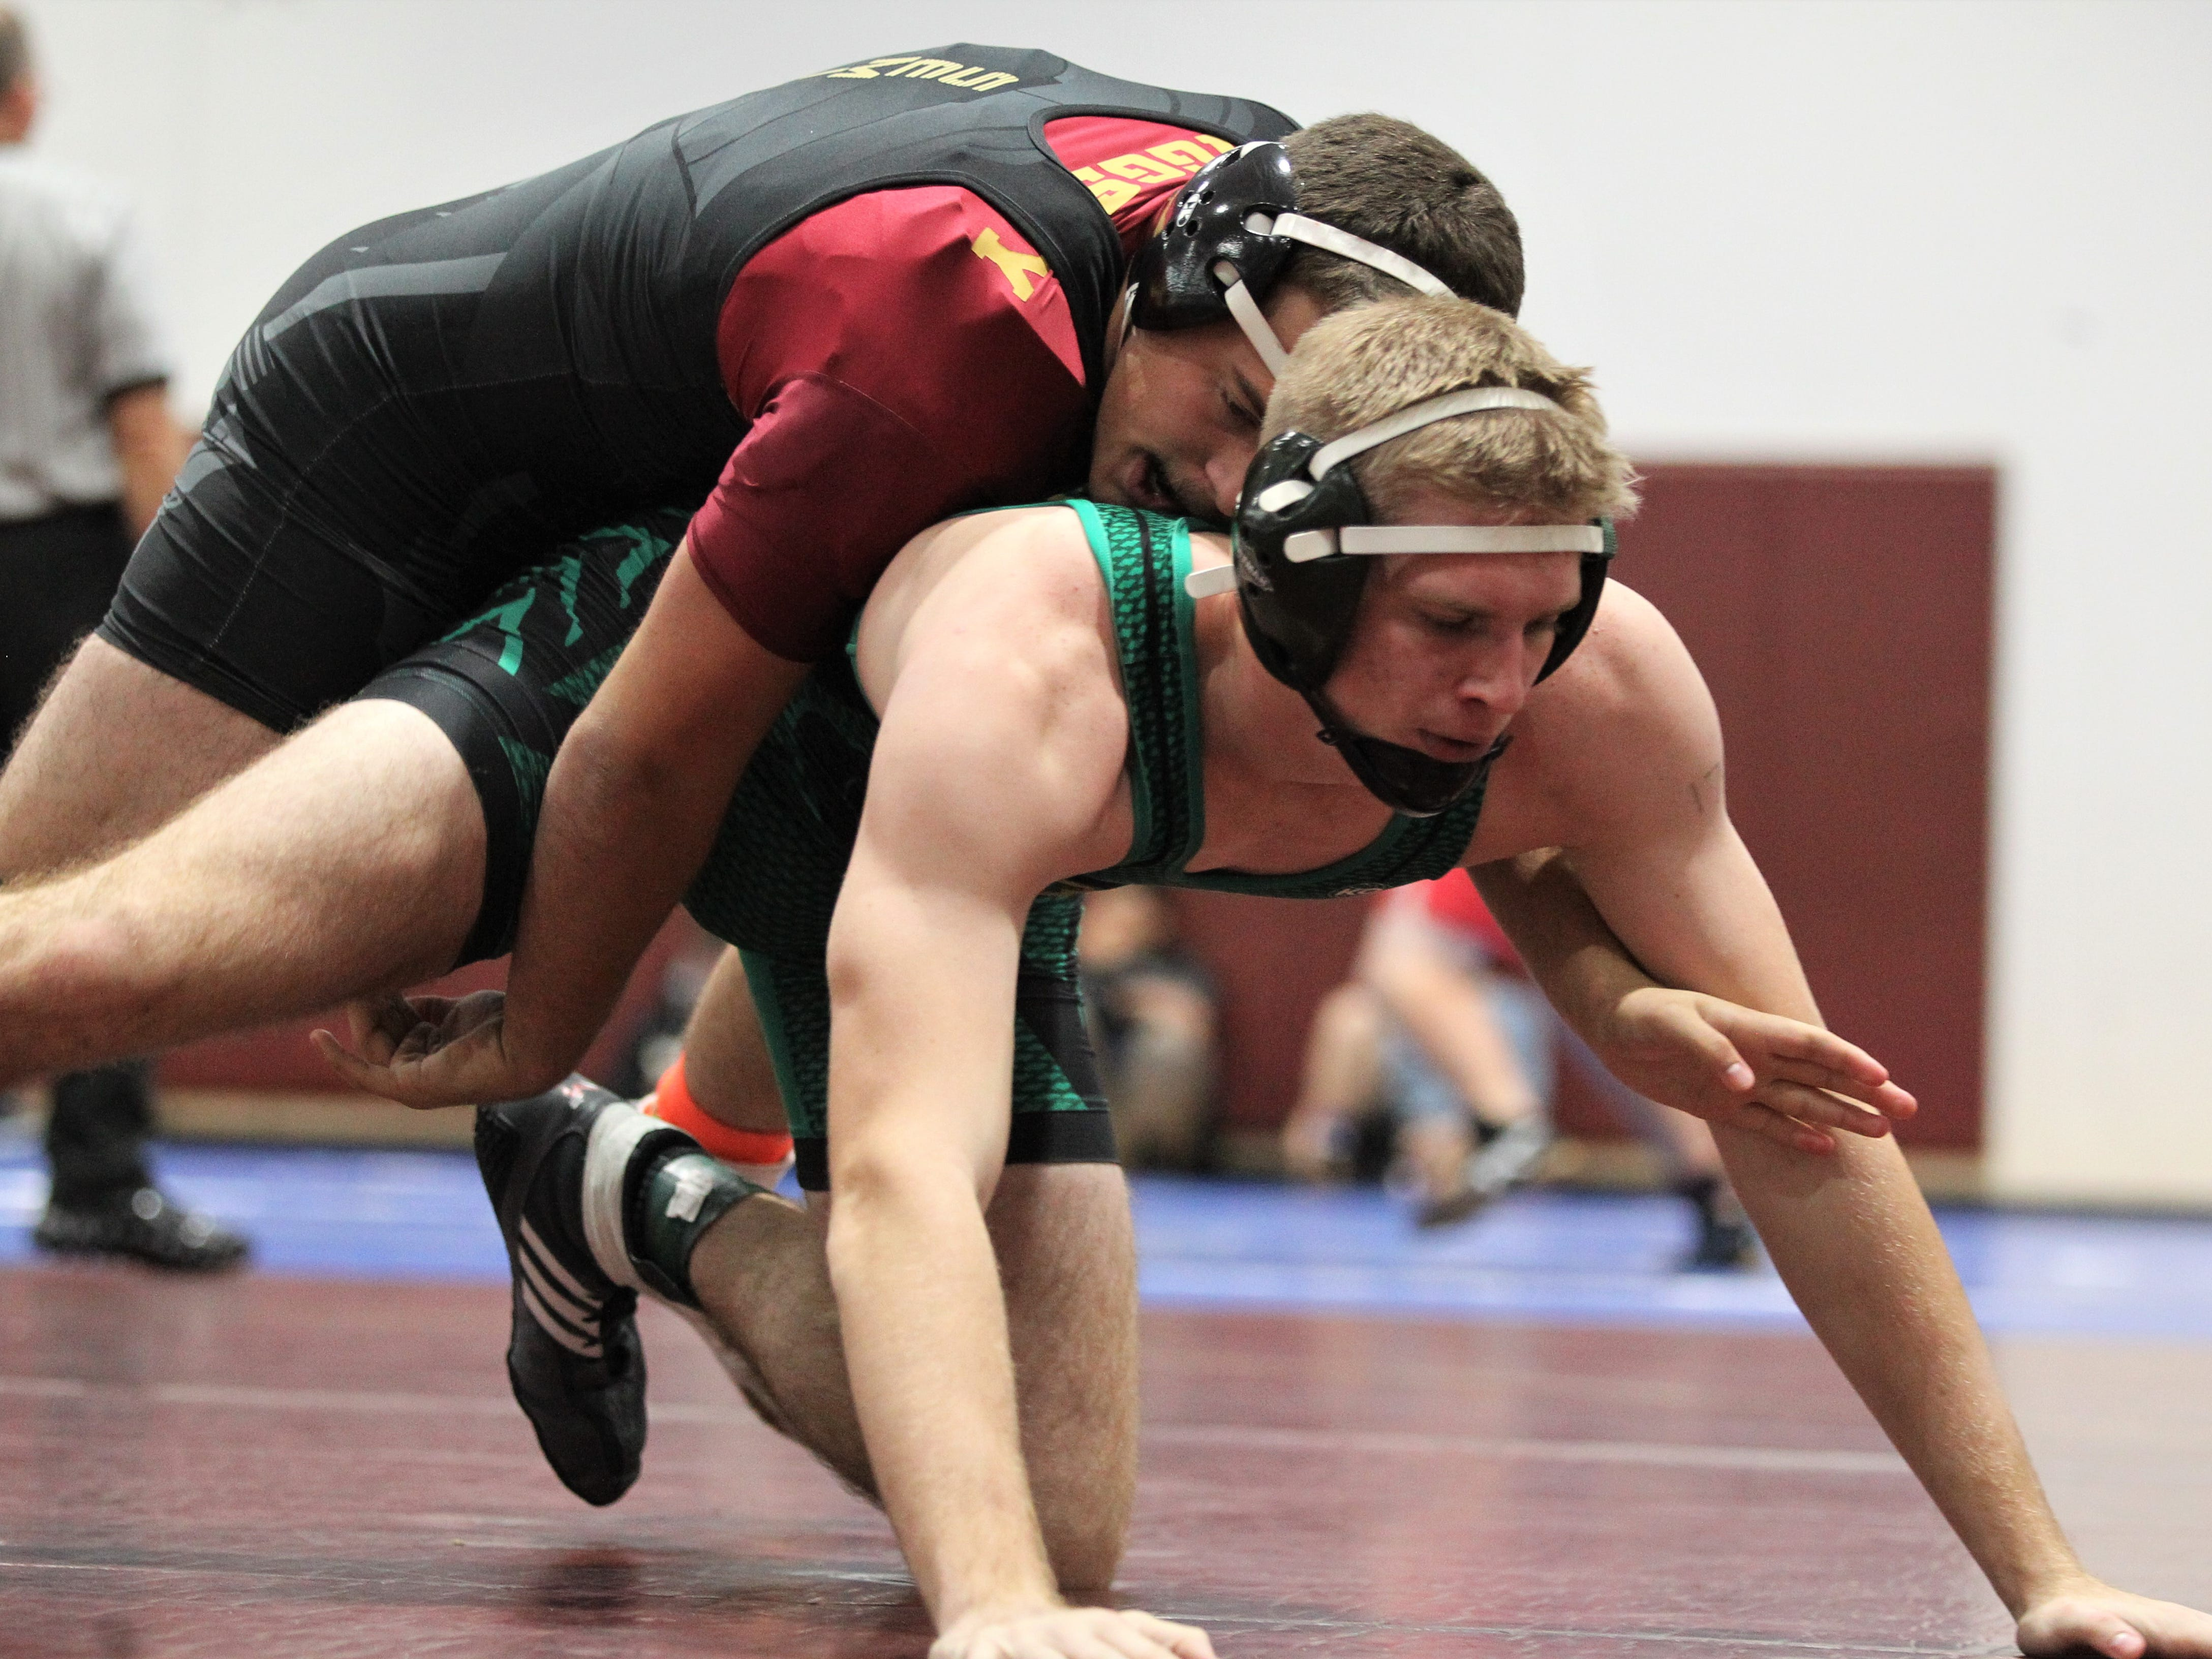 Florida High's Chauncy Riggsby and Lincoln's Andrew Collins wrestle at the Cam Brown Seminole Classic wrestling tournament at Florida High on Dec. 7-8, 2018.